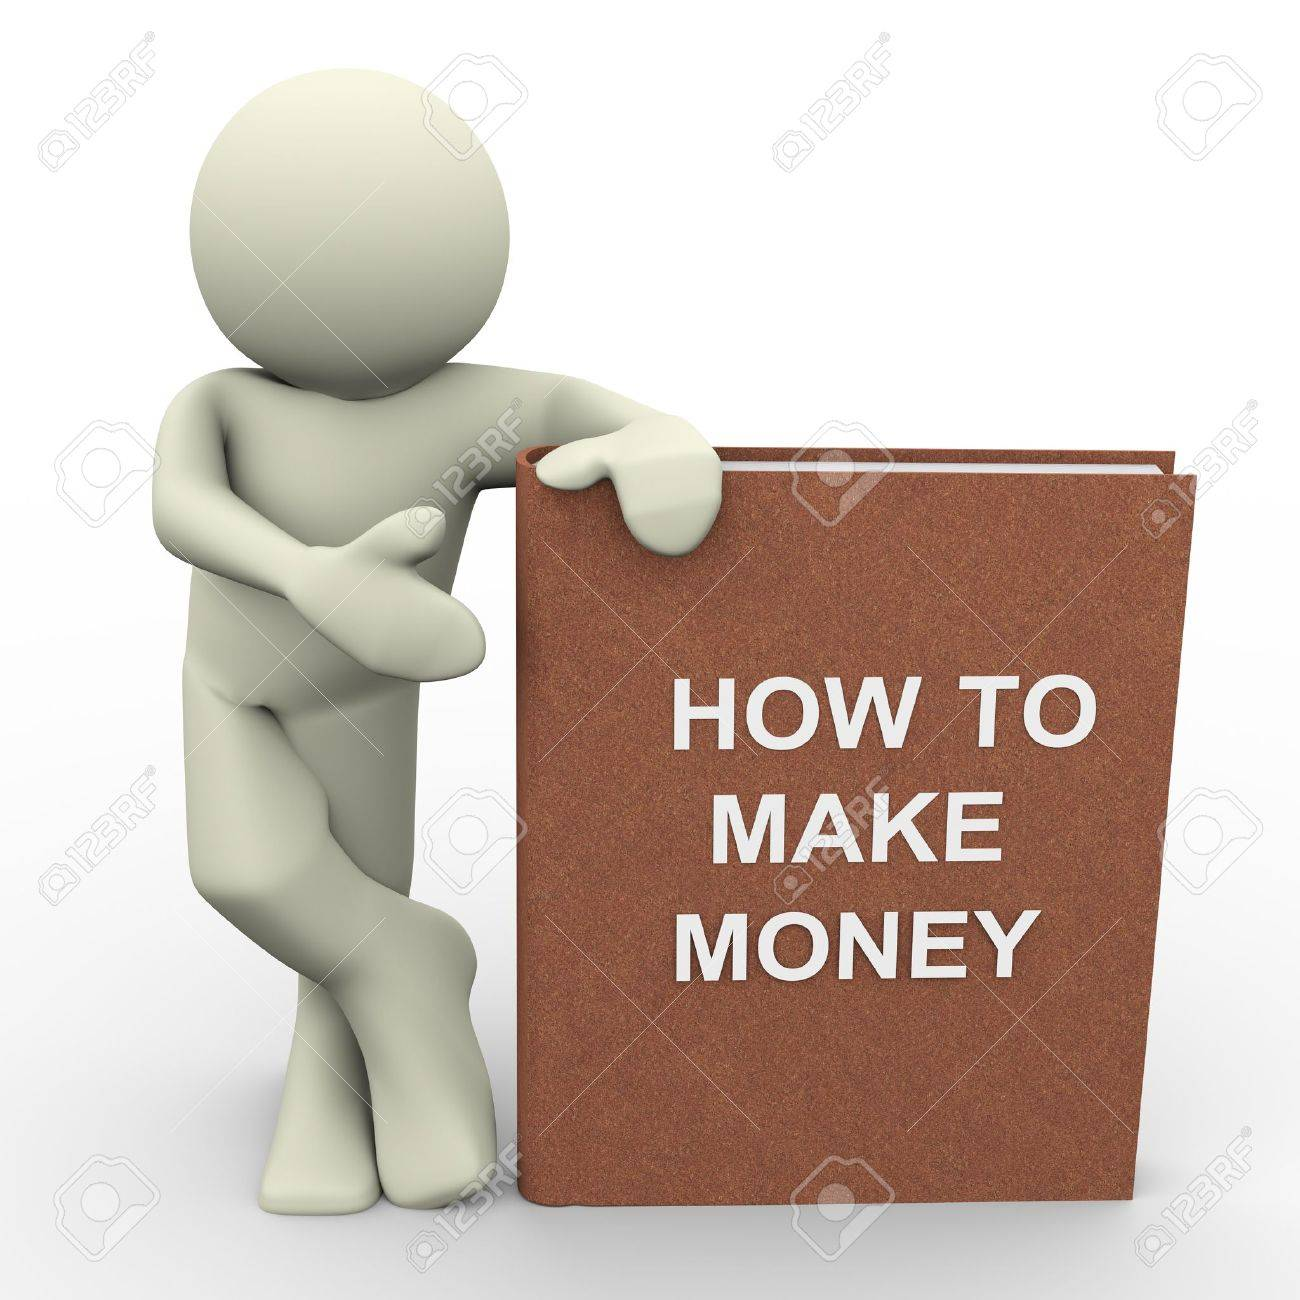 Earn Money: 3d Render Of Man With How To Make Money Book Human Character 3d